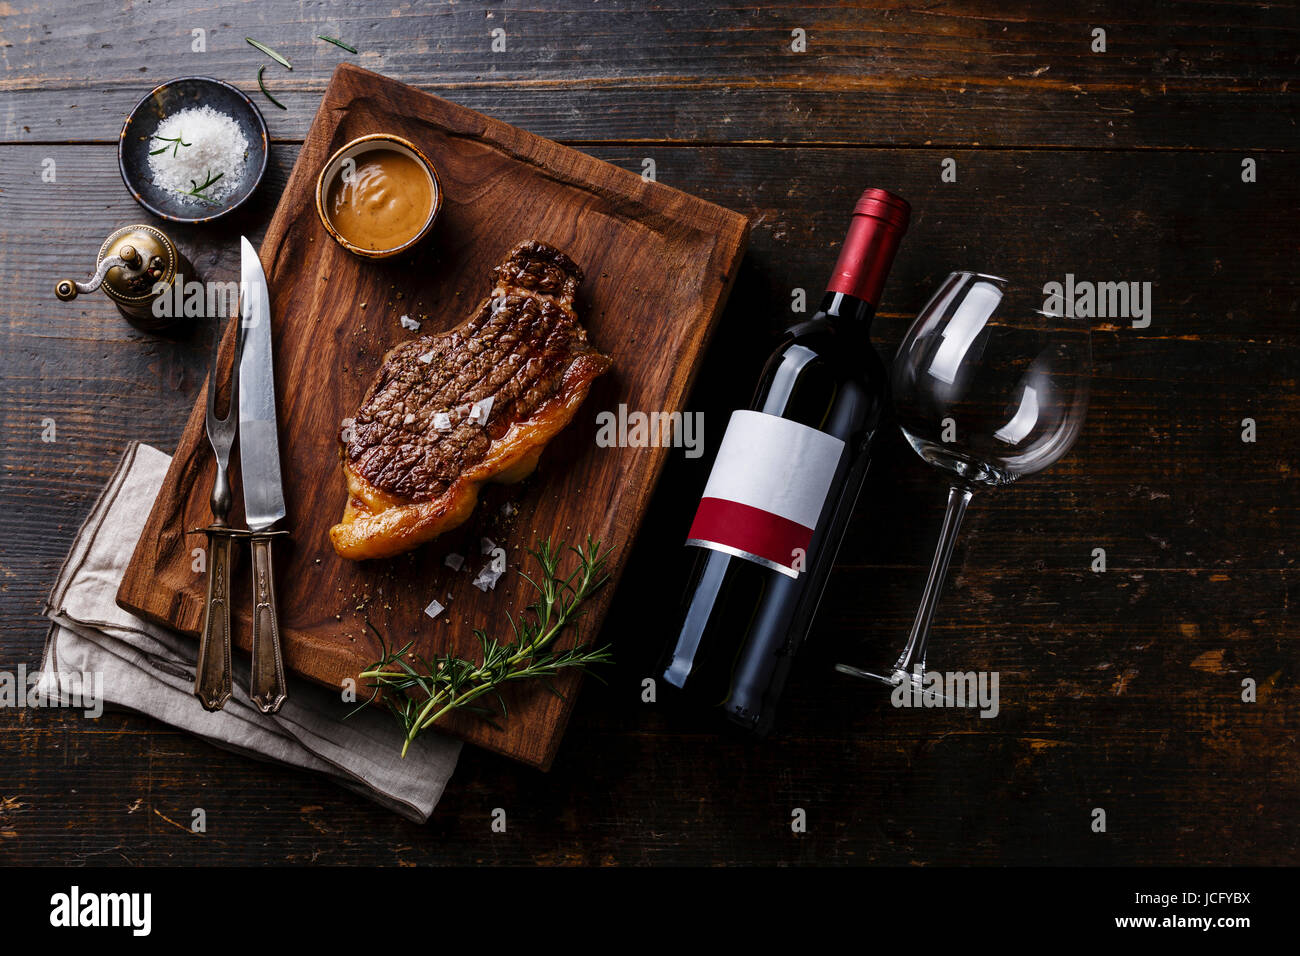 Grilled Steak Striploin with Pepper sauce and bottle of Red wine on wooden background - Stock Image